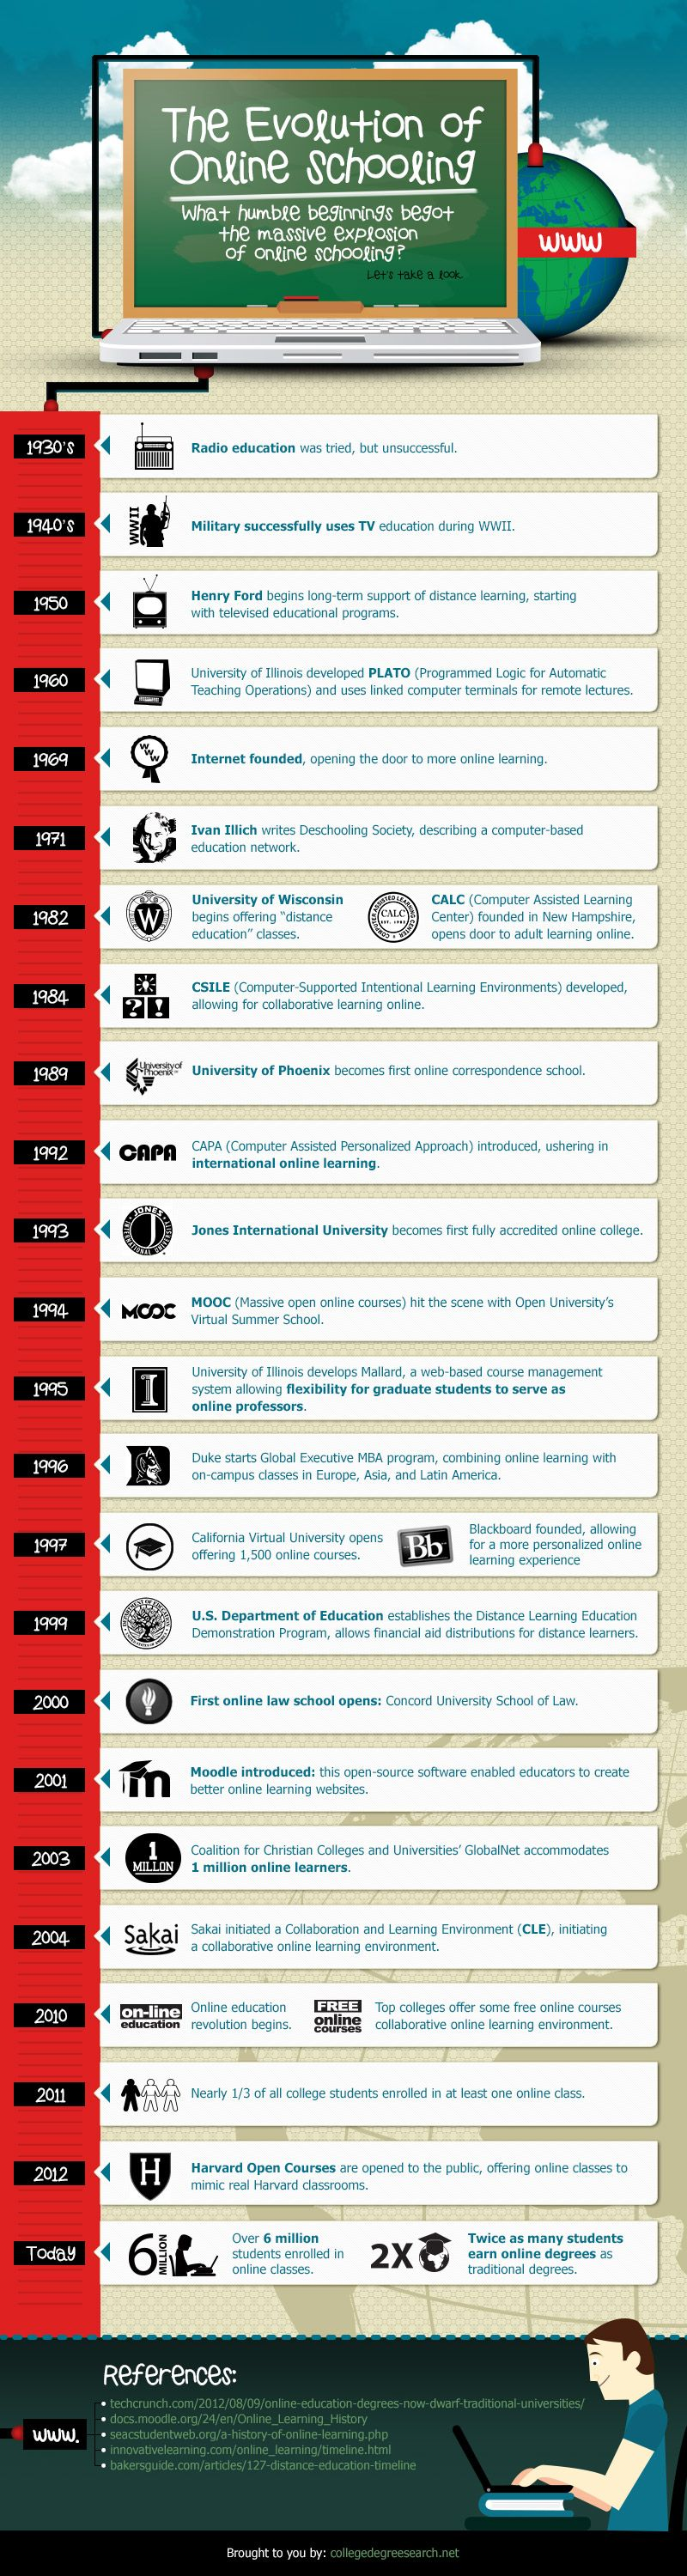 The evolution of online learning #infographic #elearning #grial #edtech